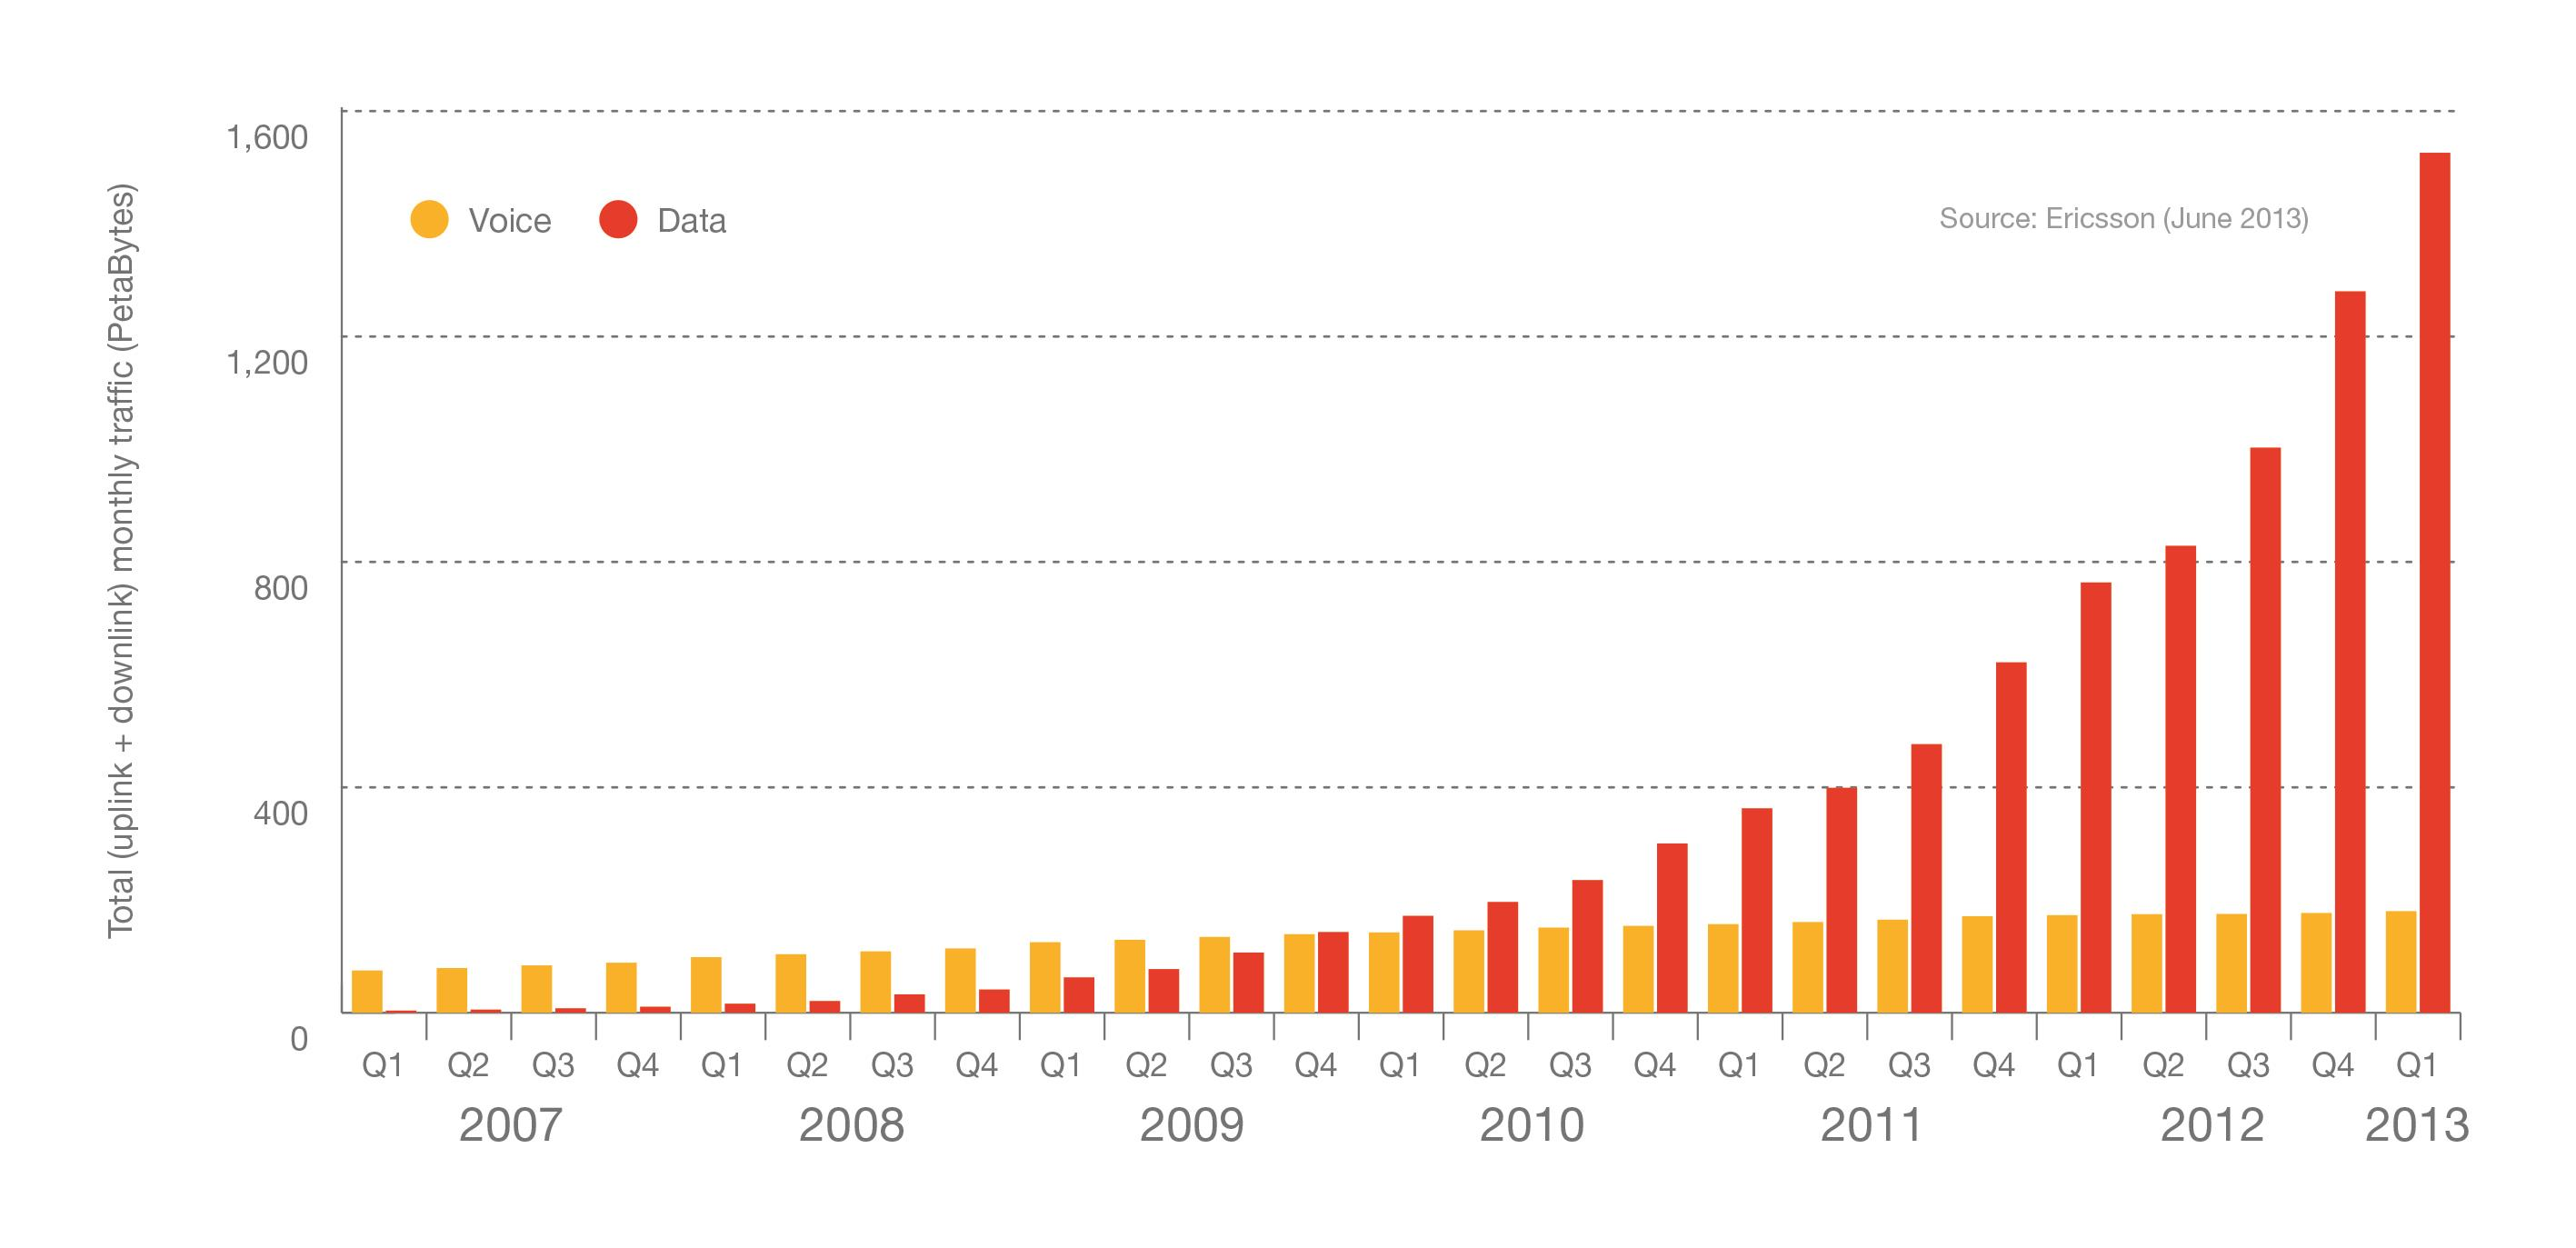 Figure 9: Global total data traffic in mobile networks, 2007-2013